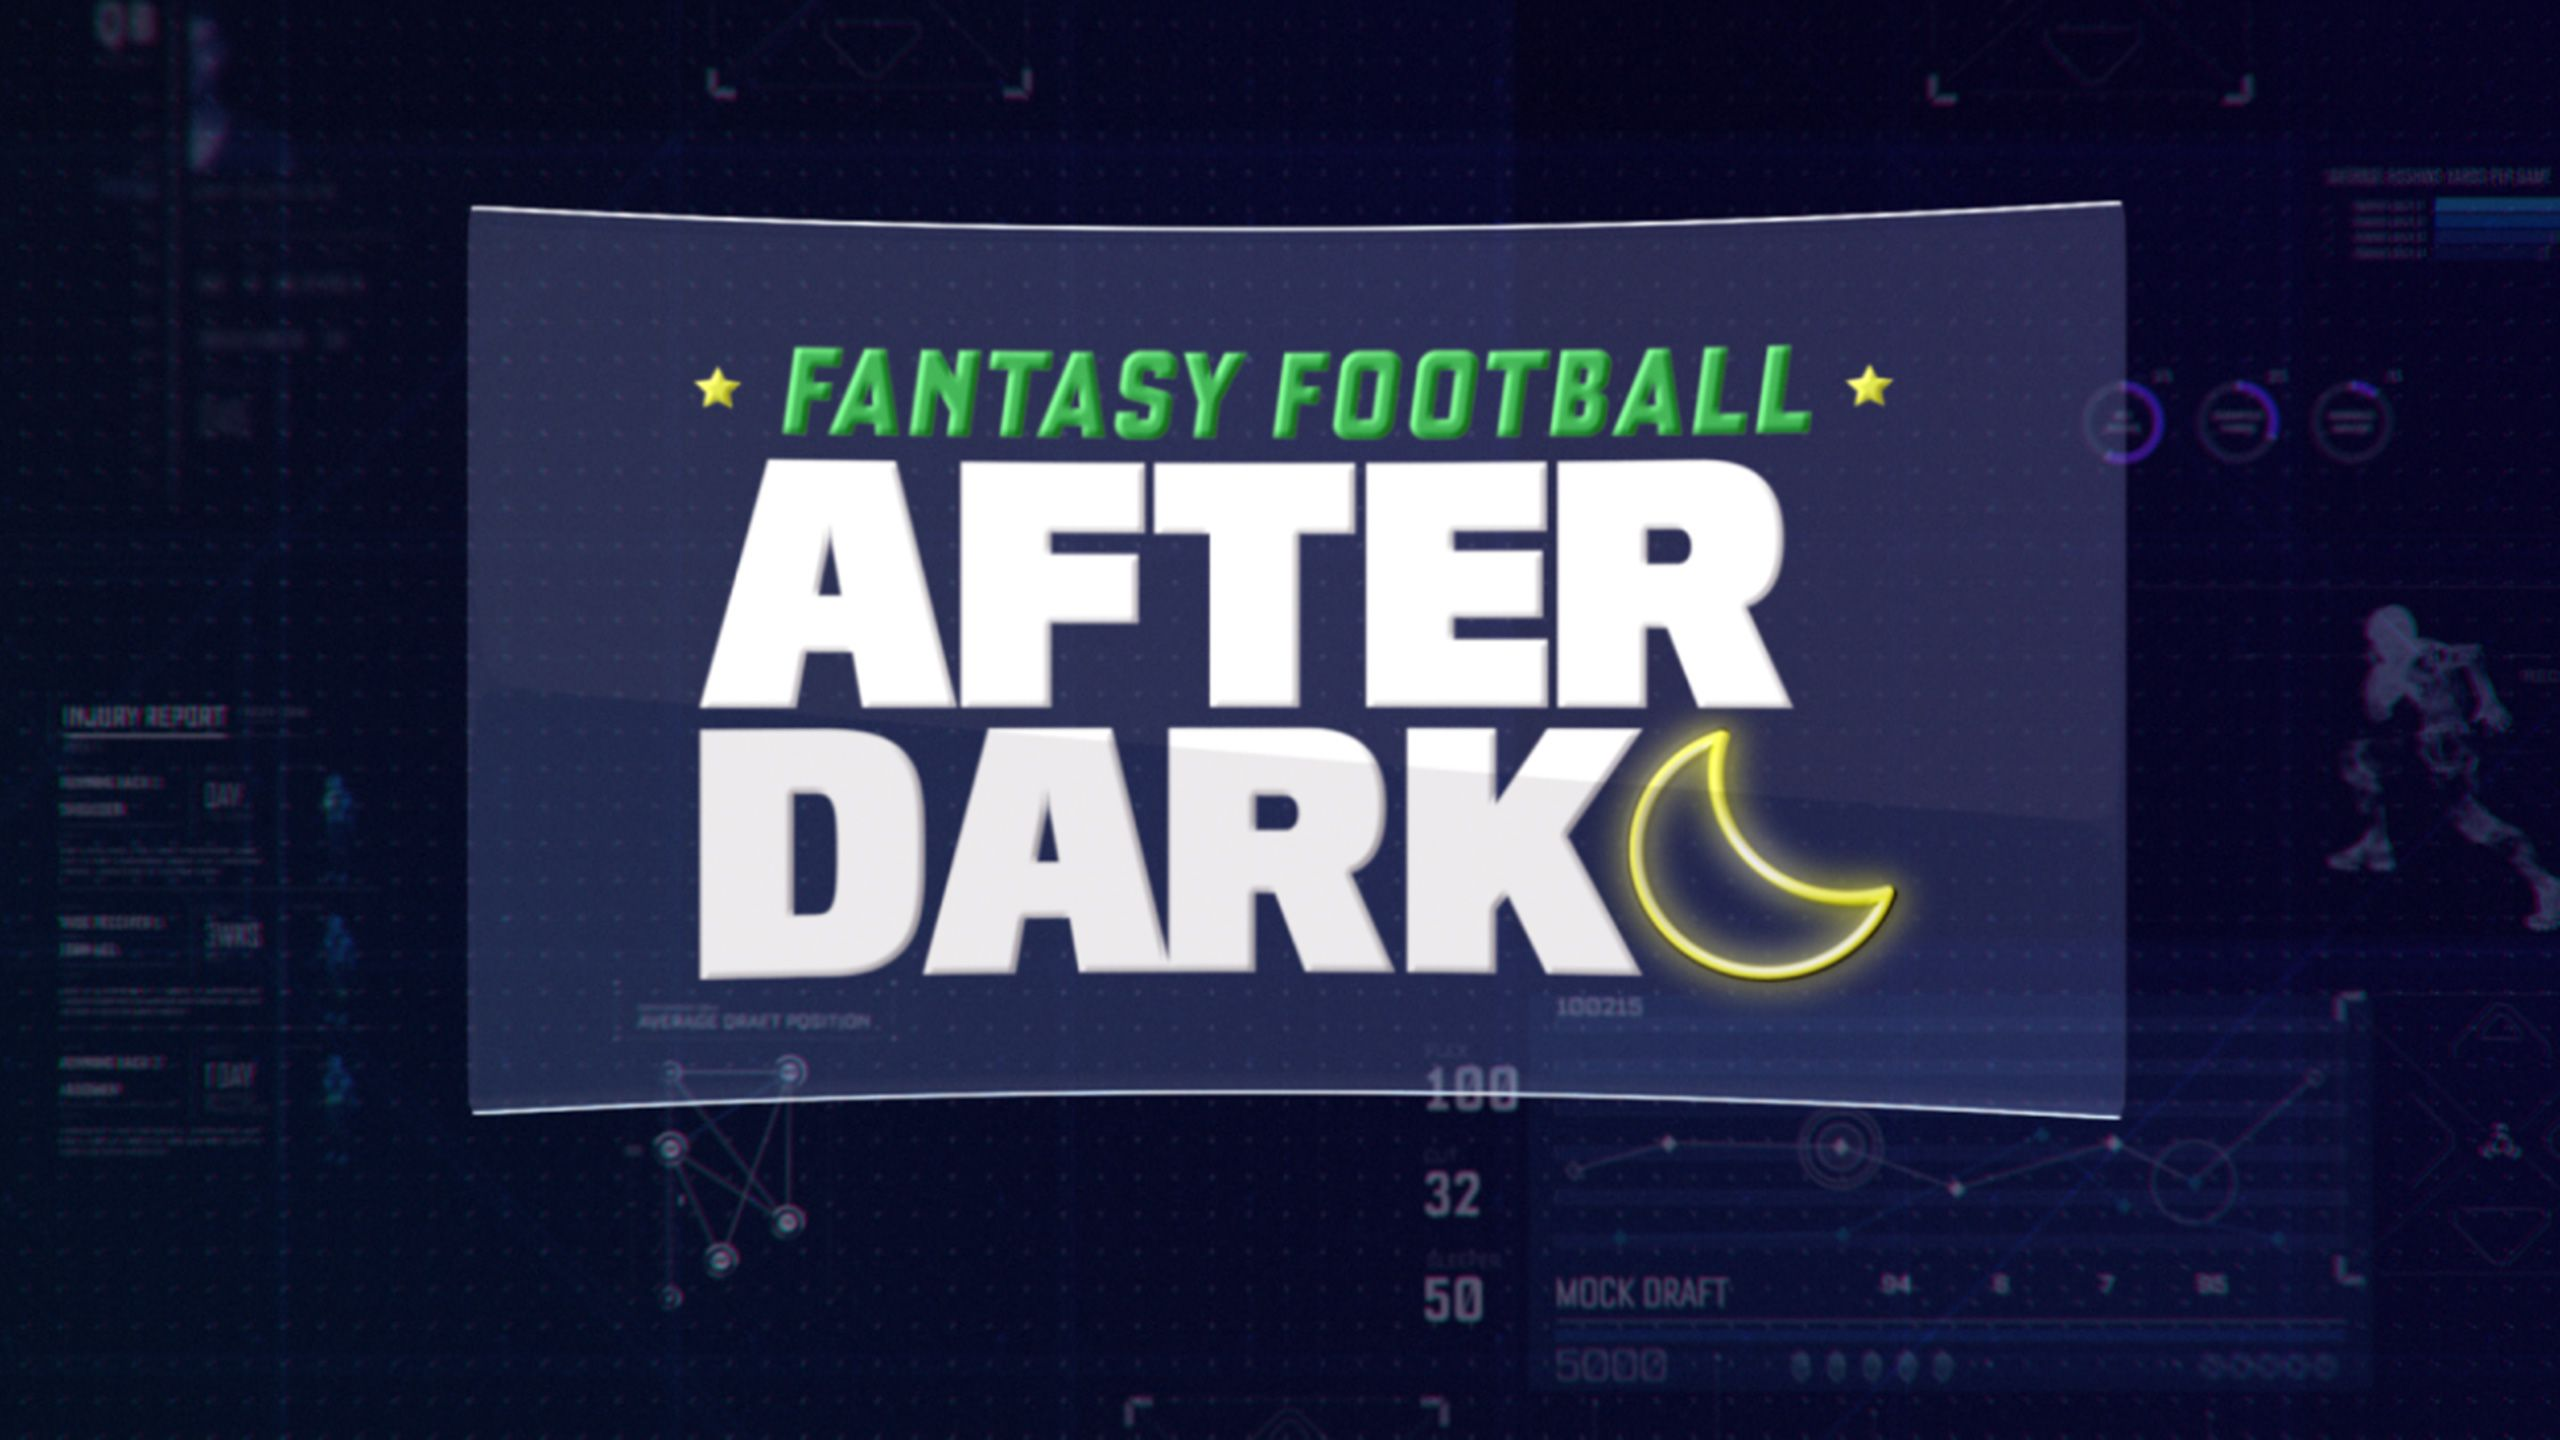 Fantasy Football After Dark